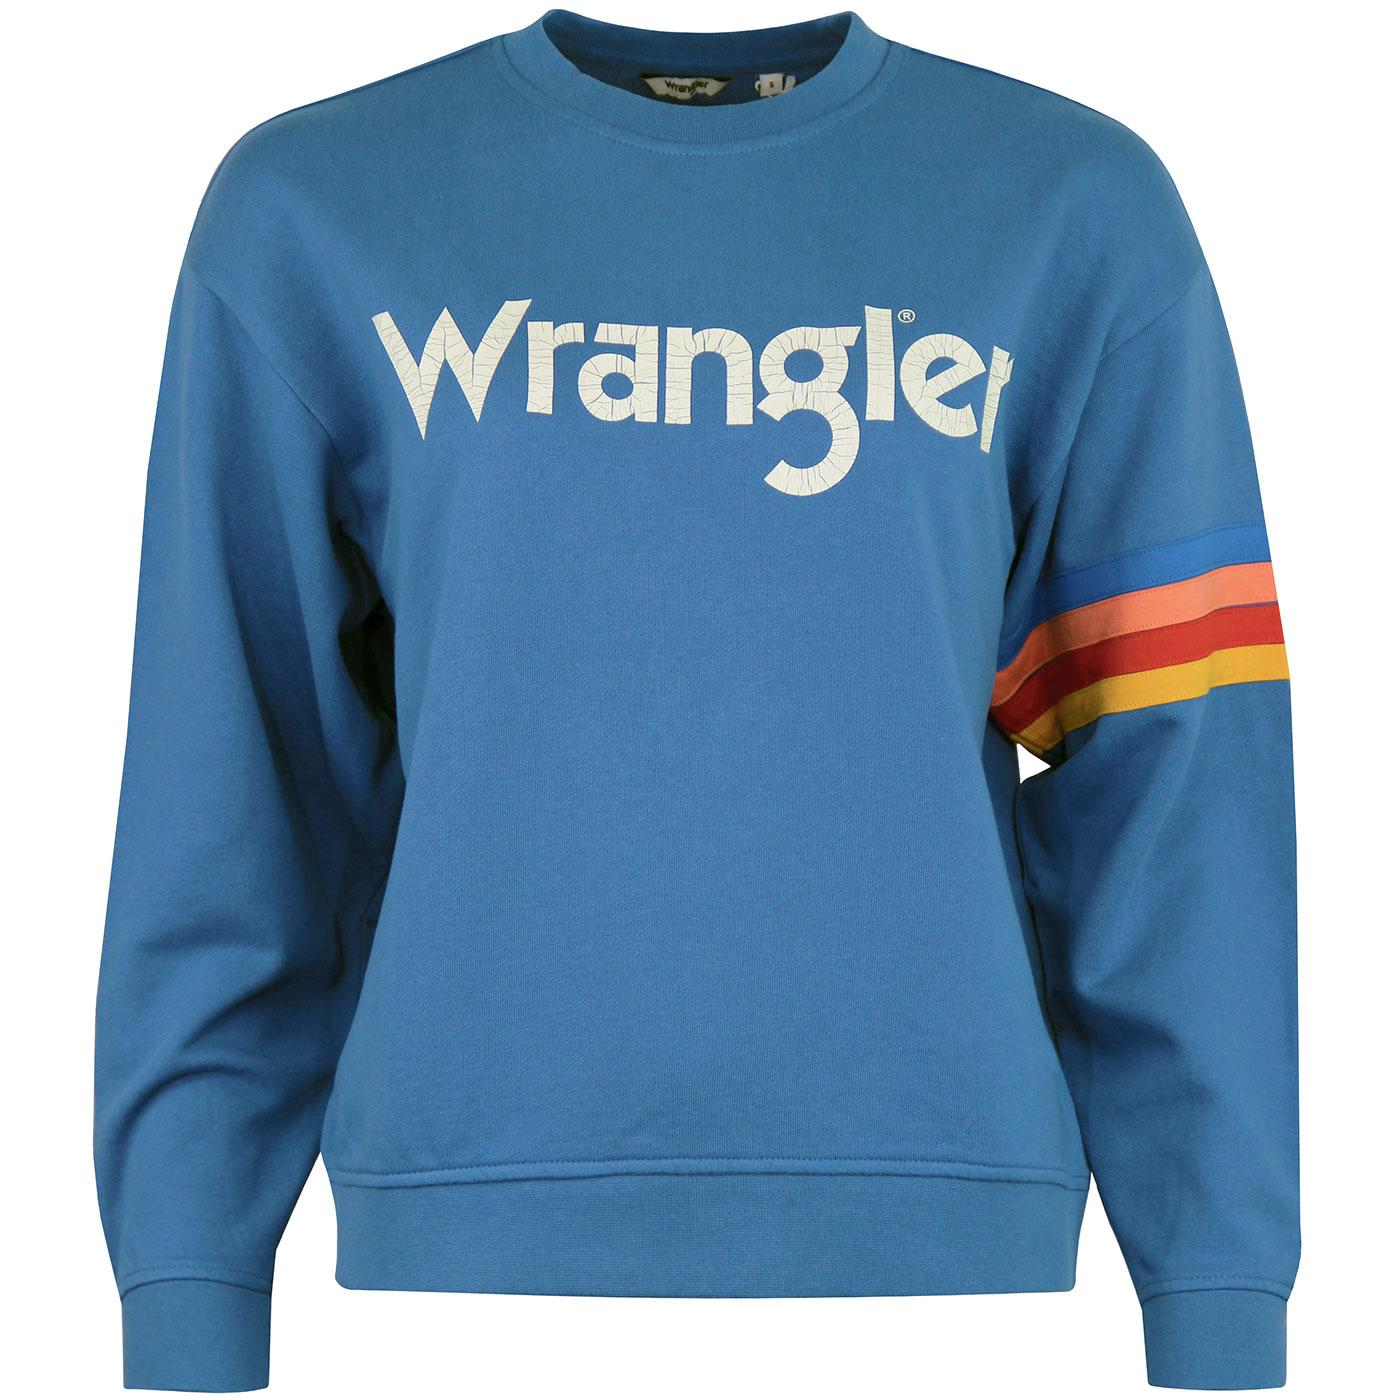 WRANGLER Women's Retro Seventies Logo Sweater